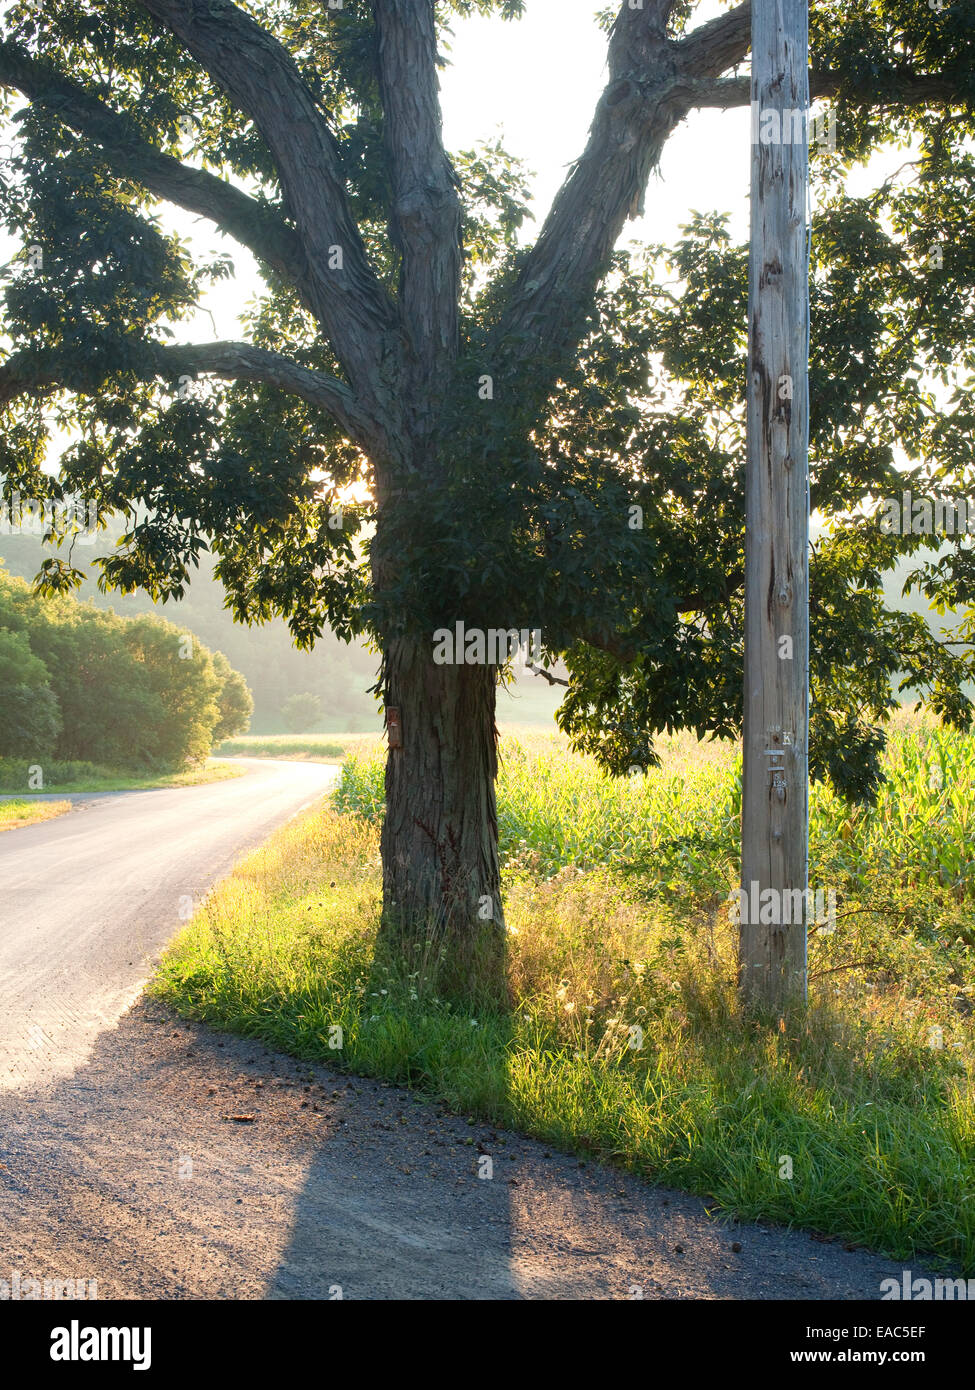 Hickory tree at country road during summer - Stock Image